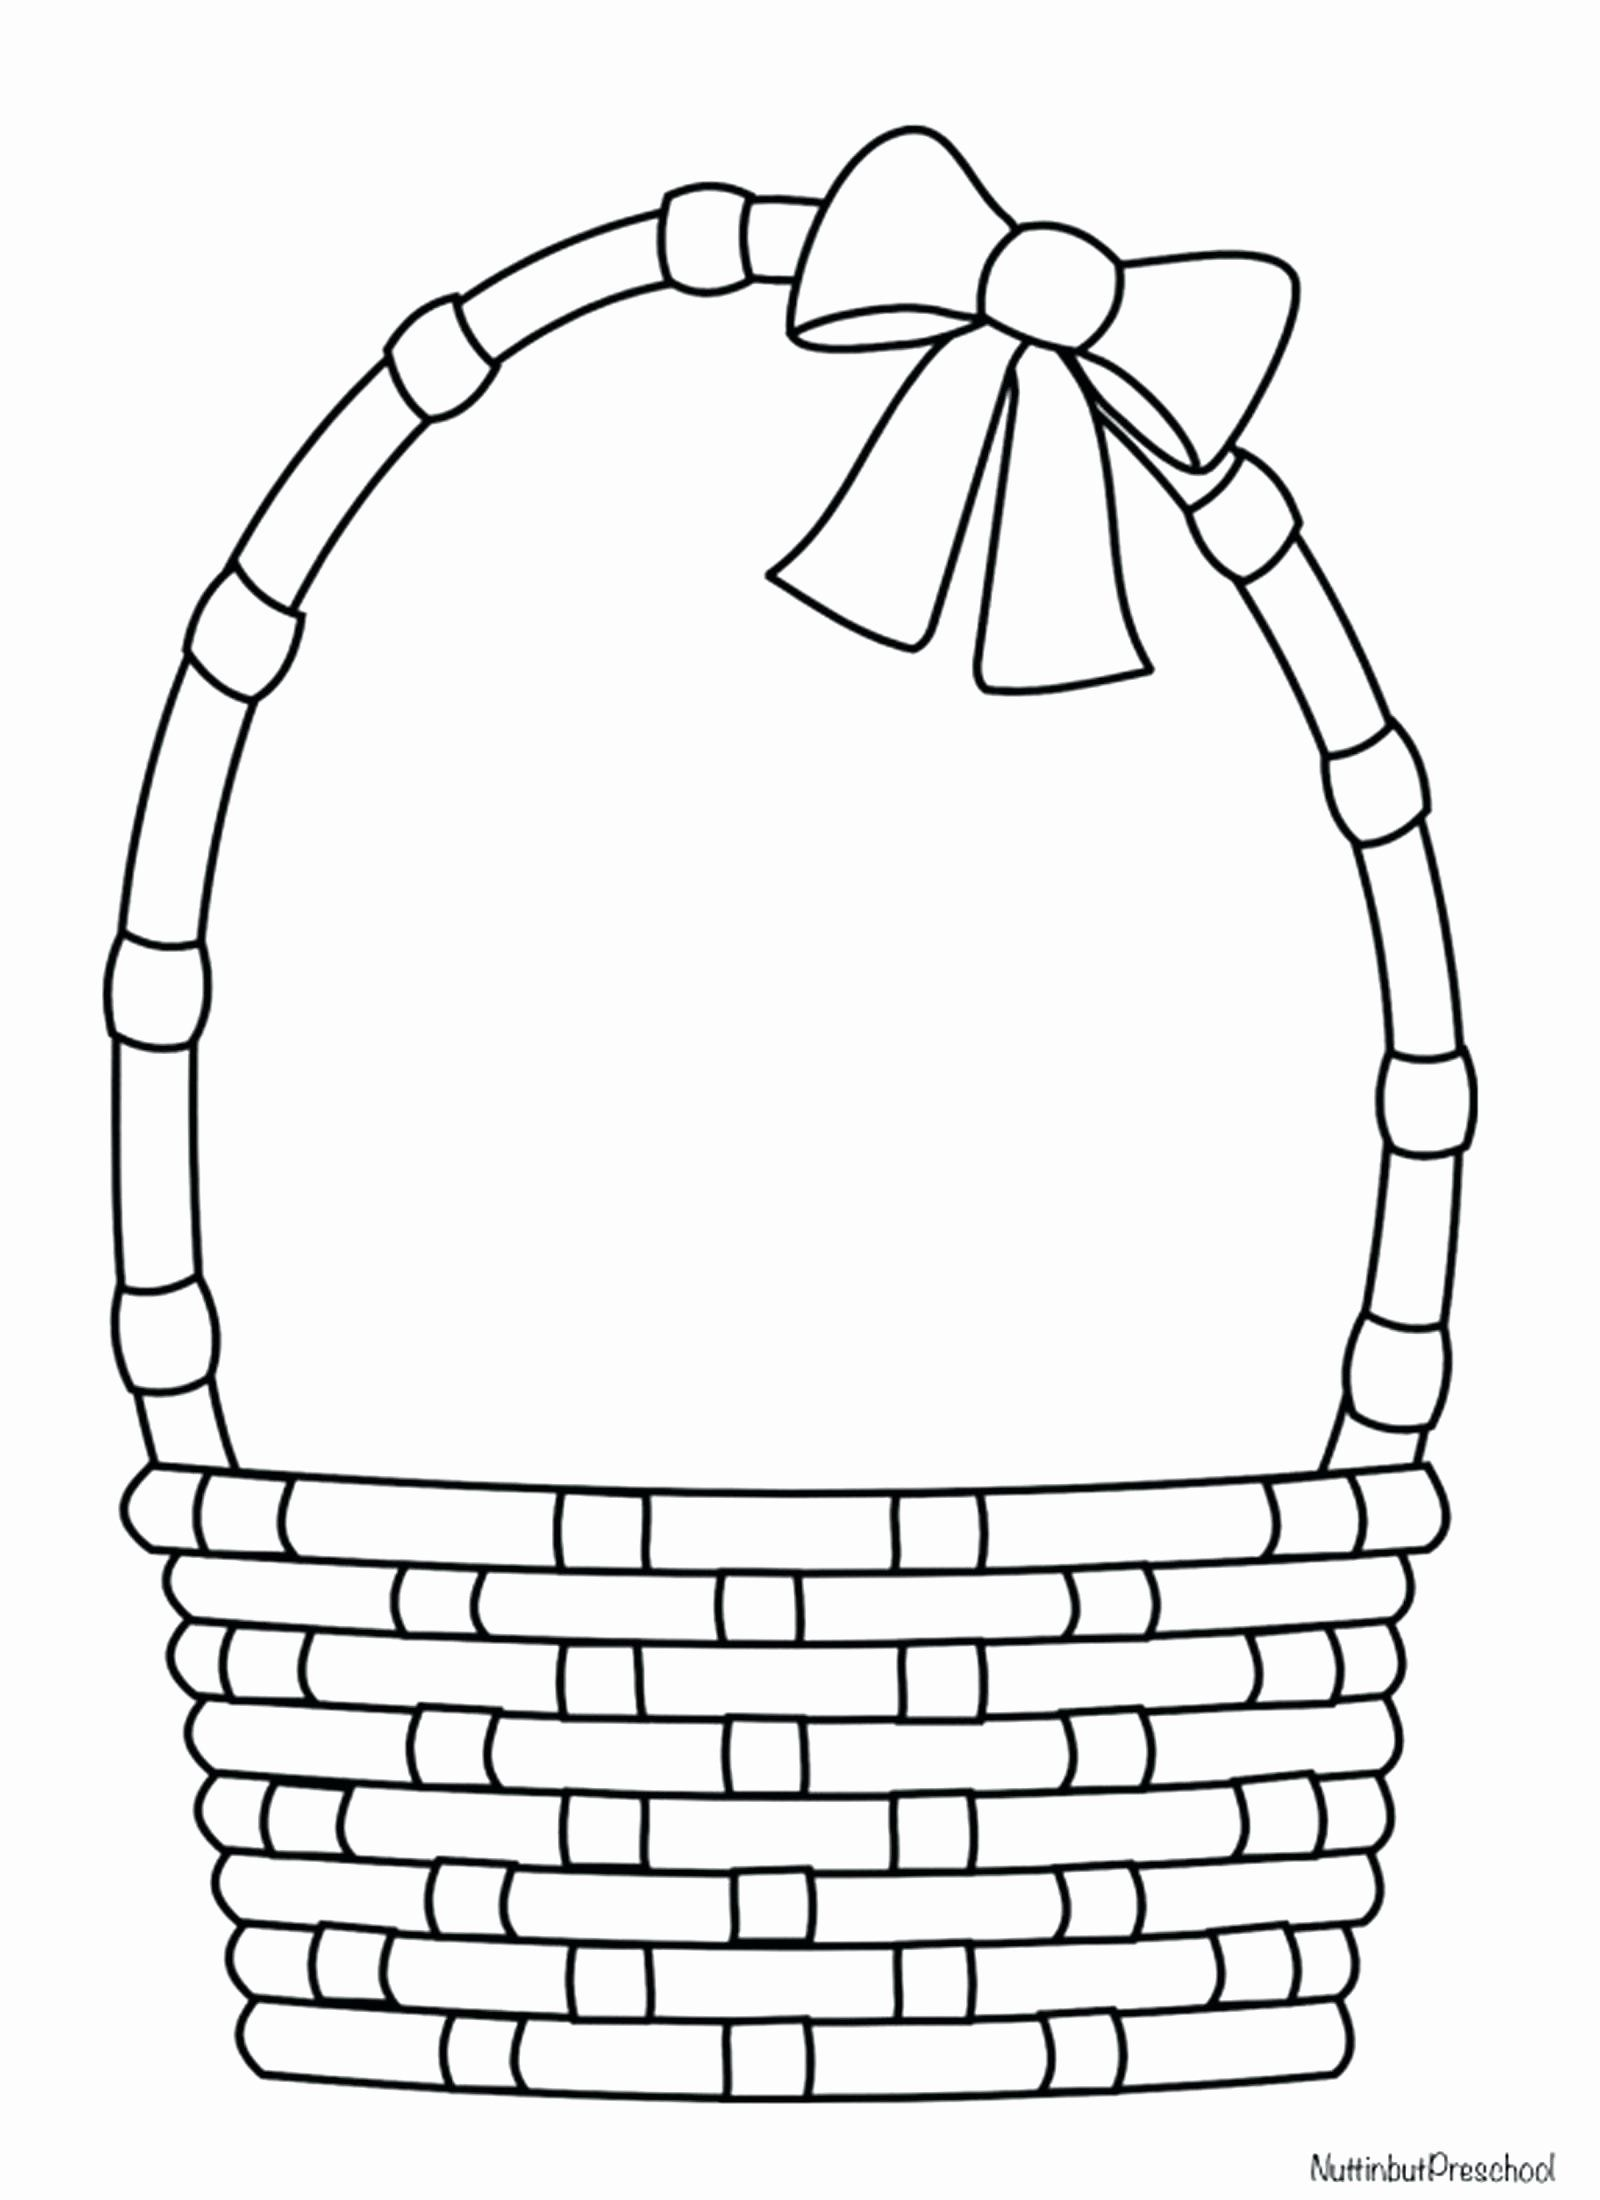 Empty Easter Basket Coloring Page Luxury Free Printable Easter And Spring Coloring Pages Lagun In 2020 Easter Basket Pattern Easter Basket Printable Easter Colouring